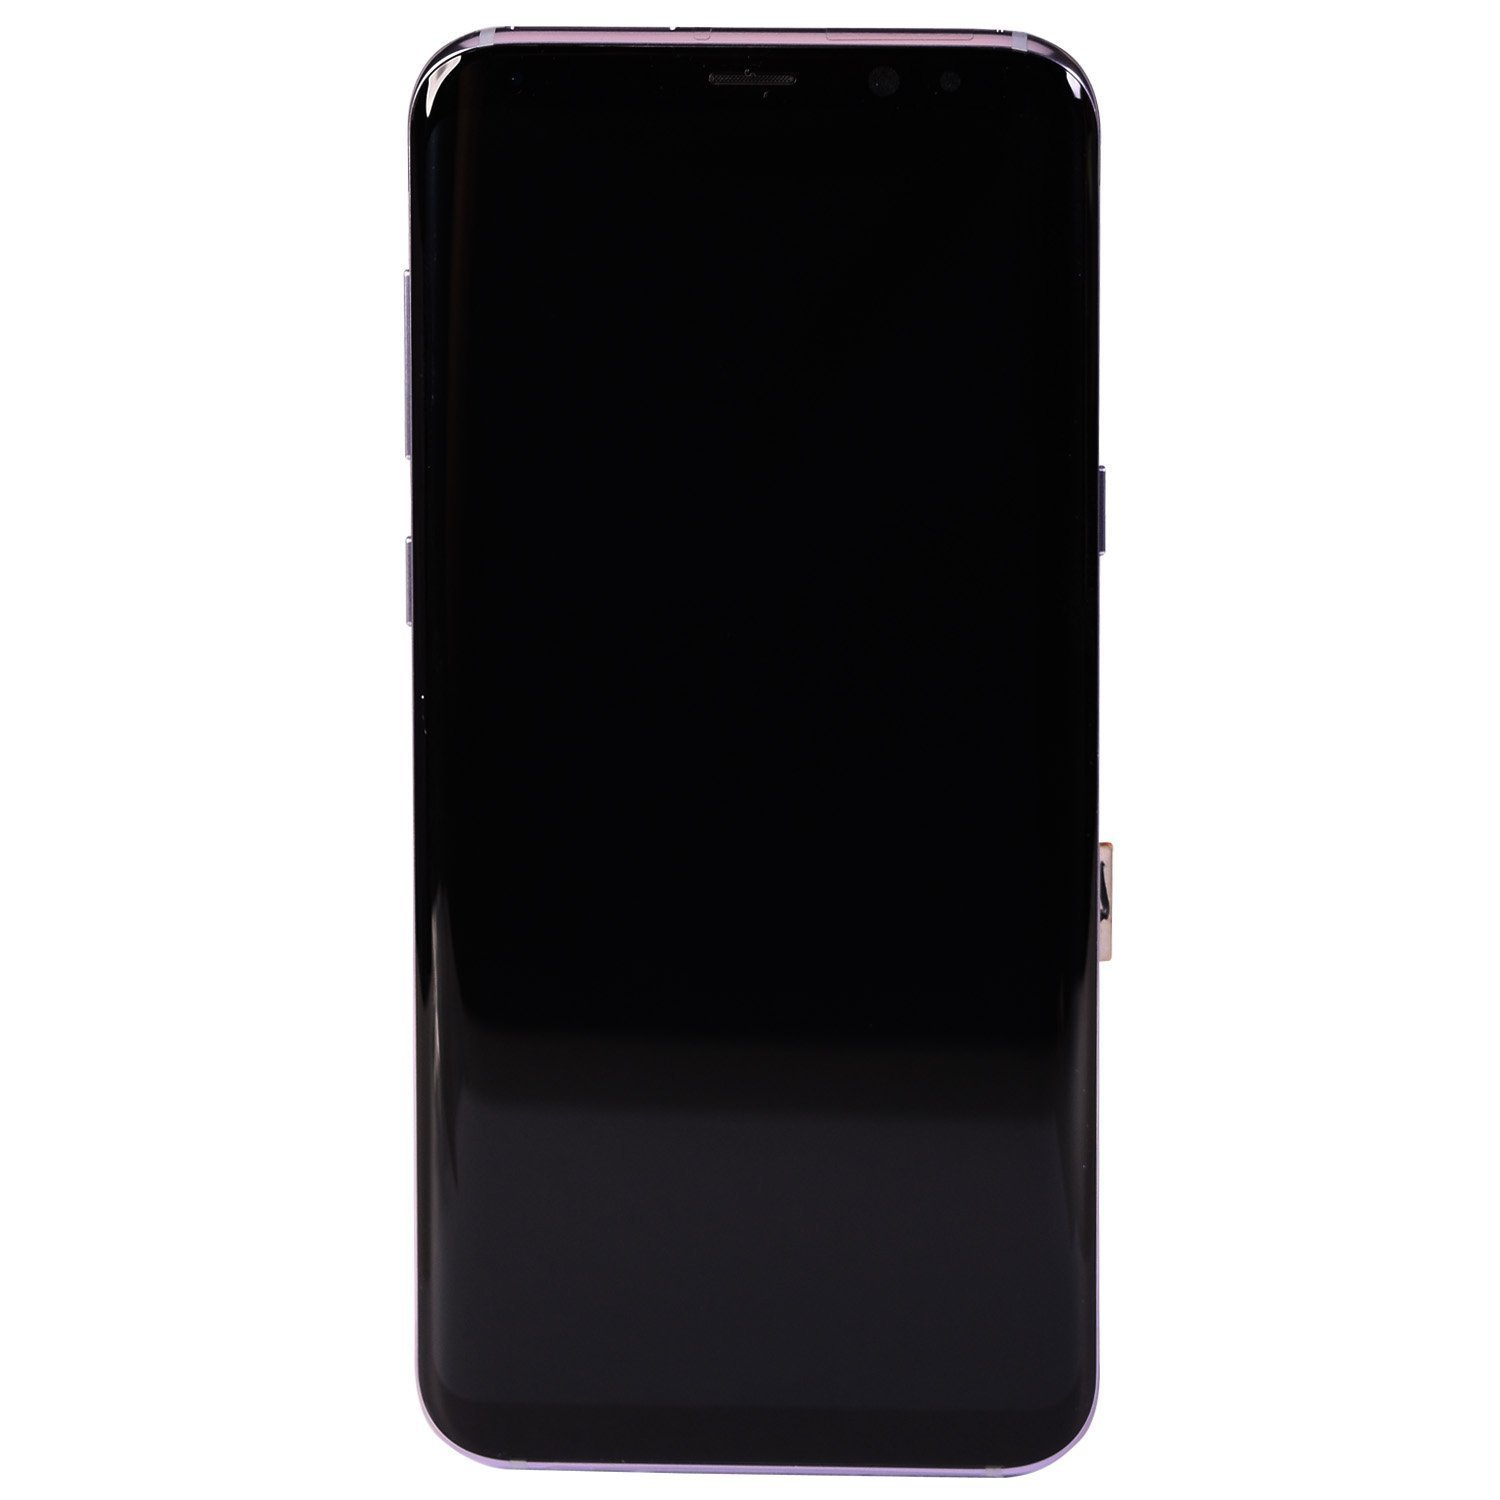 Samsung Galaxy S8 Plus Screen Replacement - Black